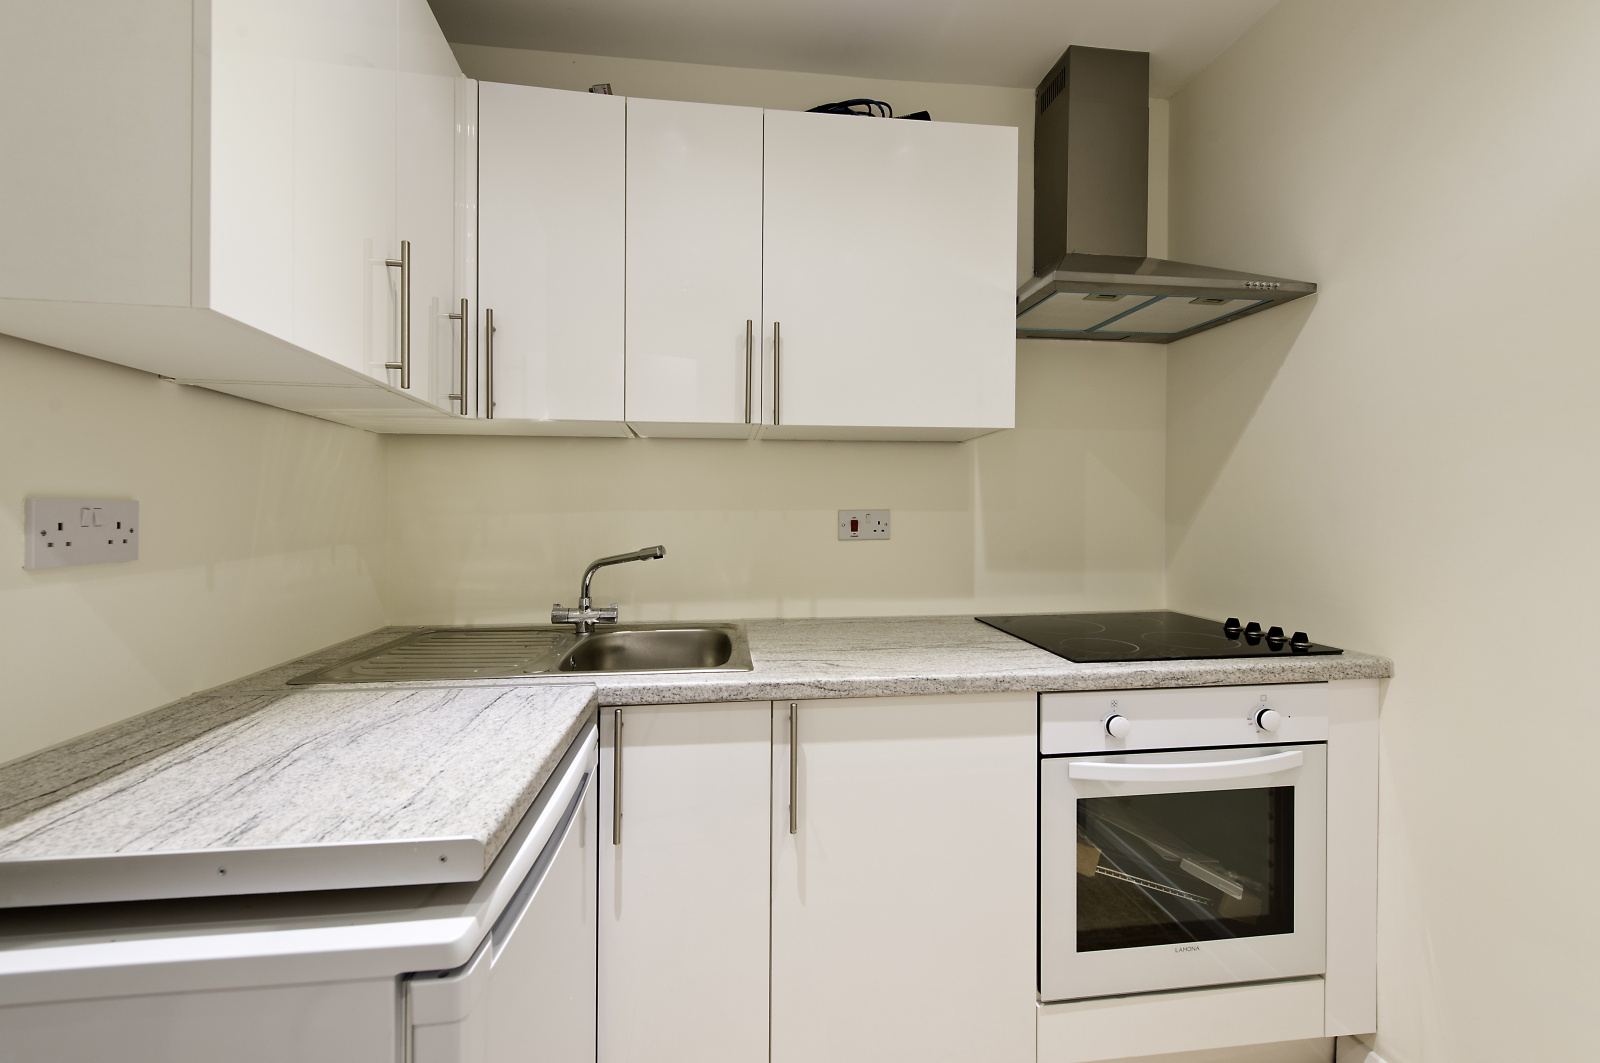 1 bed house share to rent in Charleville road, West Kensington, London  - Property Image 4